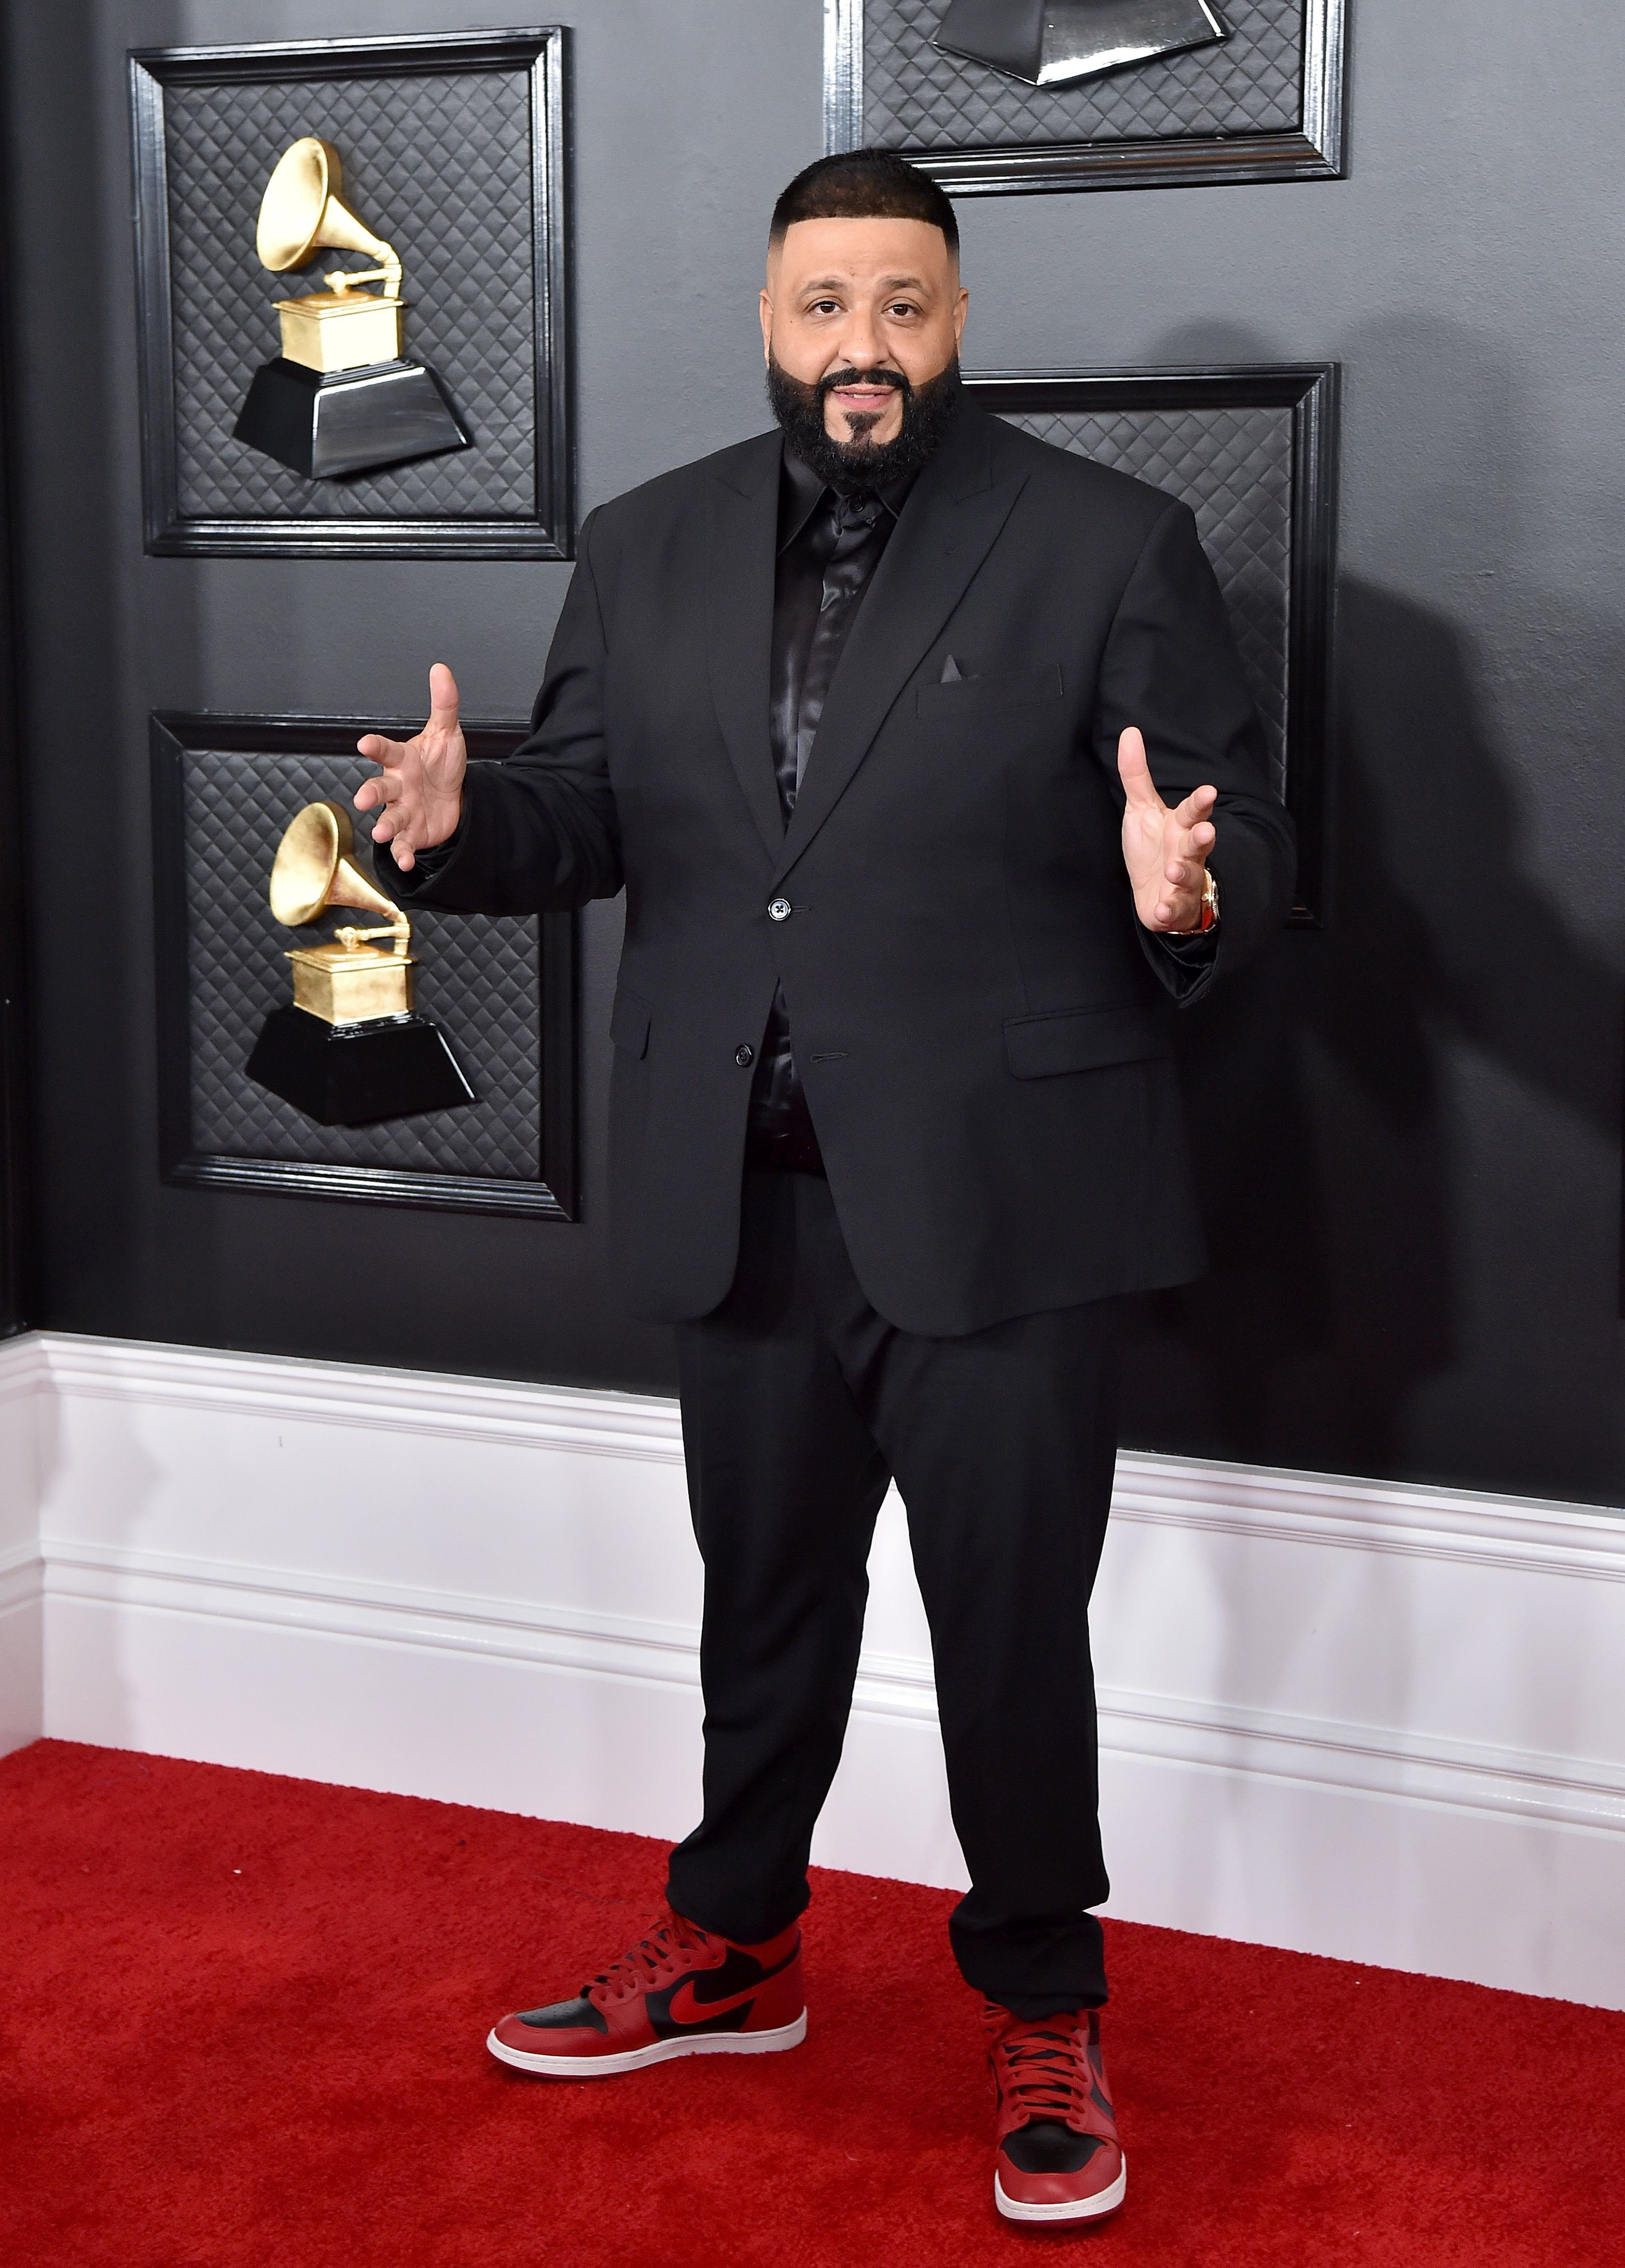 DJ Khaled attends the 62nd Annual GRAMMY Awards at Staples Center on January 26, 2020 in Los Angeles, California.   Source: Getty Images